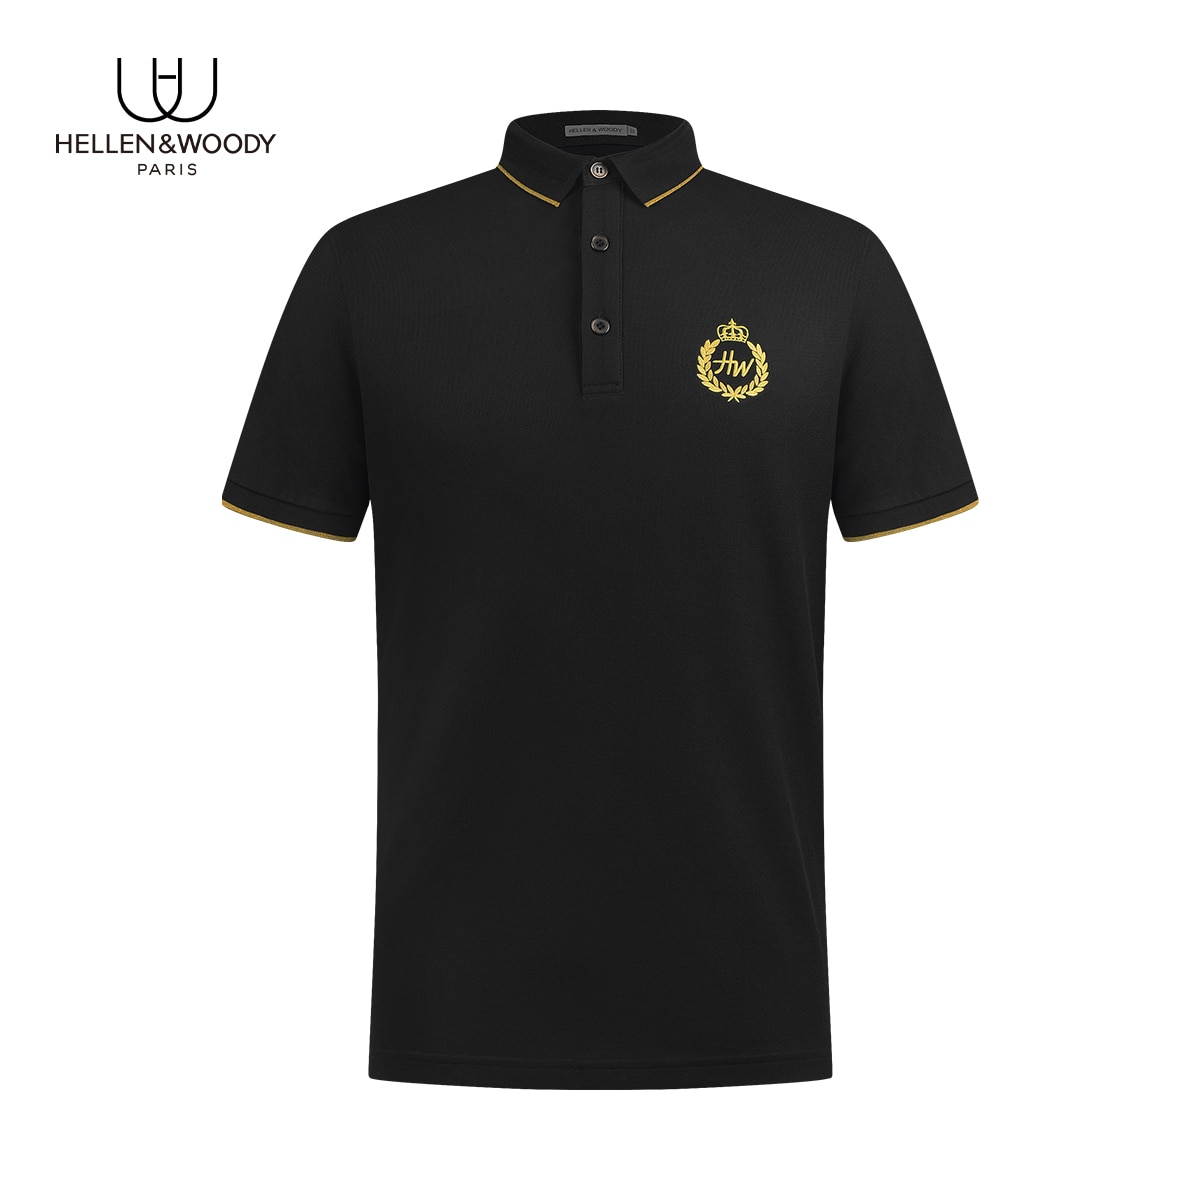 2021NewArrivalHellenwoody French Luxury Summer Men's Short Sleeve Embroidered Fashion Slim Pure Cotton Lapel Casual POLO Shirt